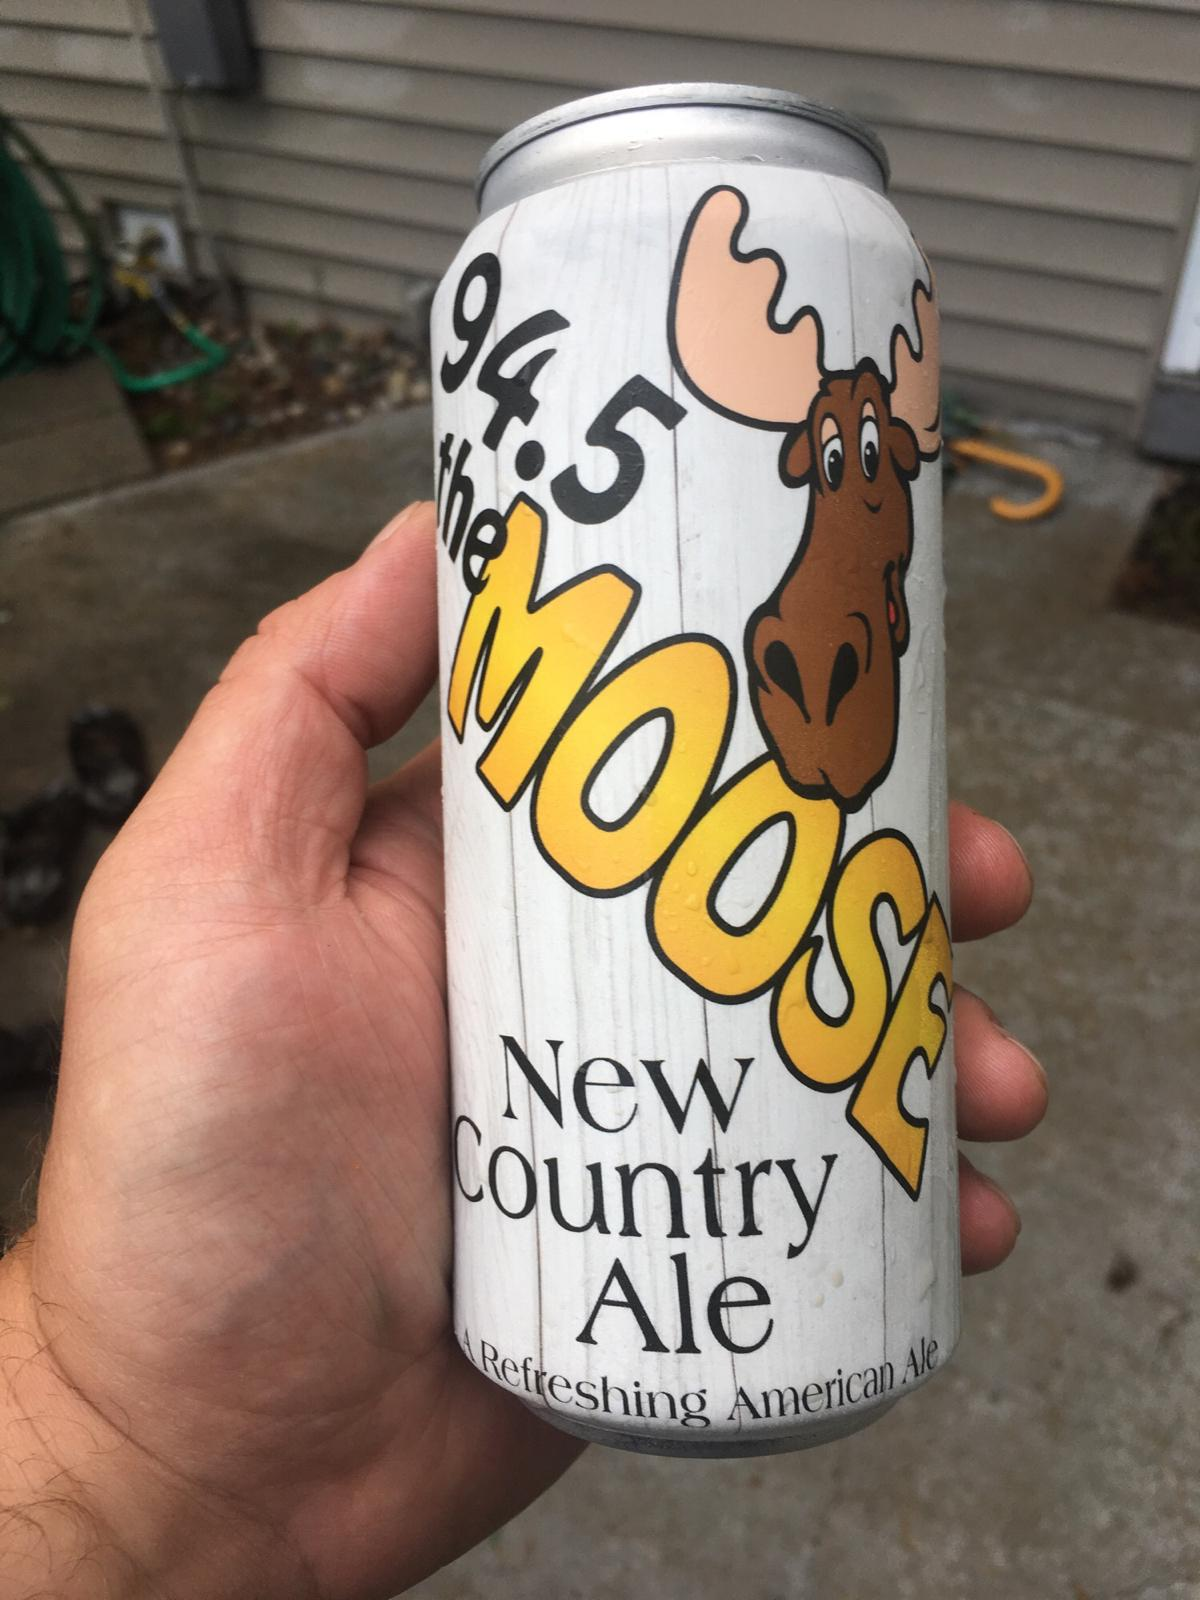 94.5 The Moose New Country Ale